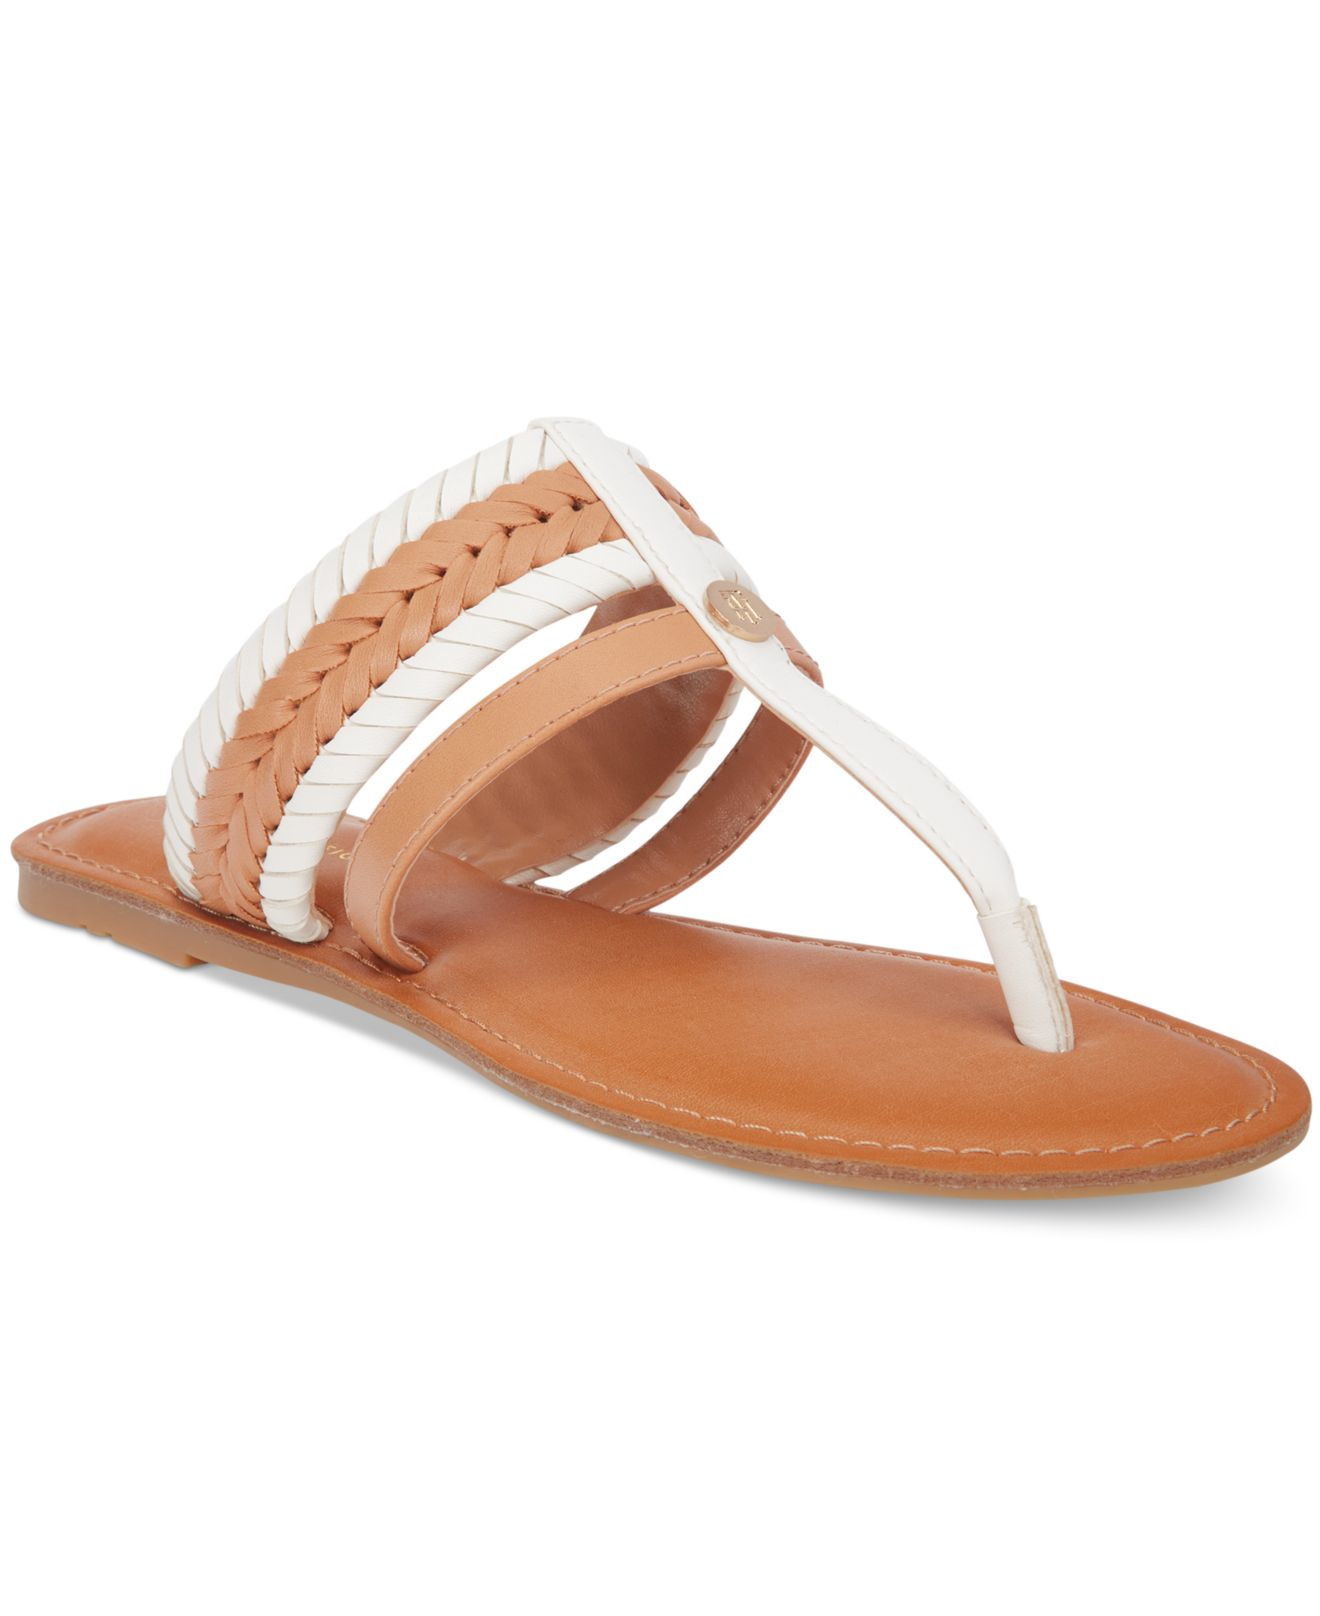 1b8129269 Tommy Hilfiger Lady Flat Thong Sandals in Metallic - Lyst